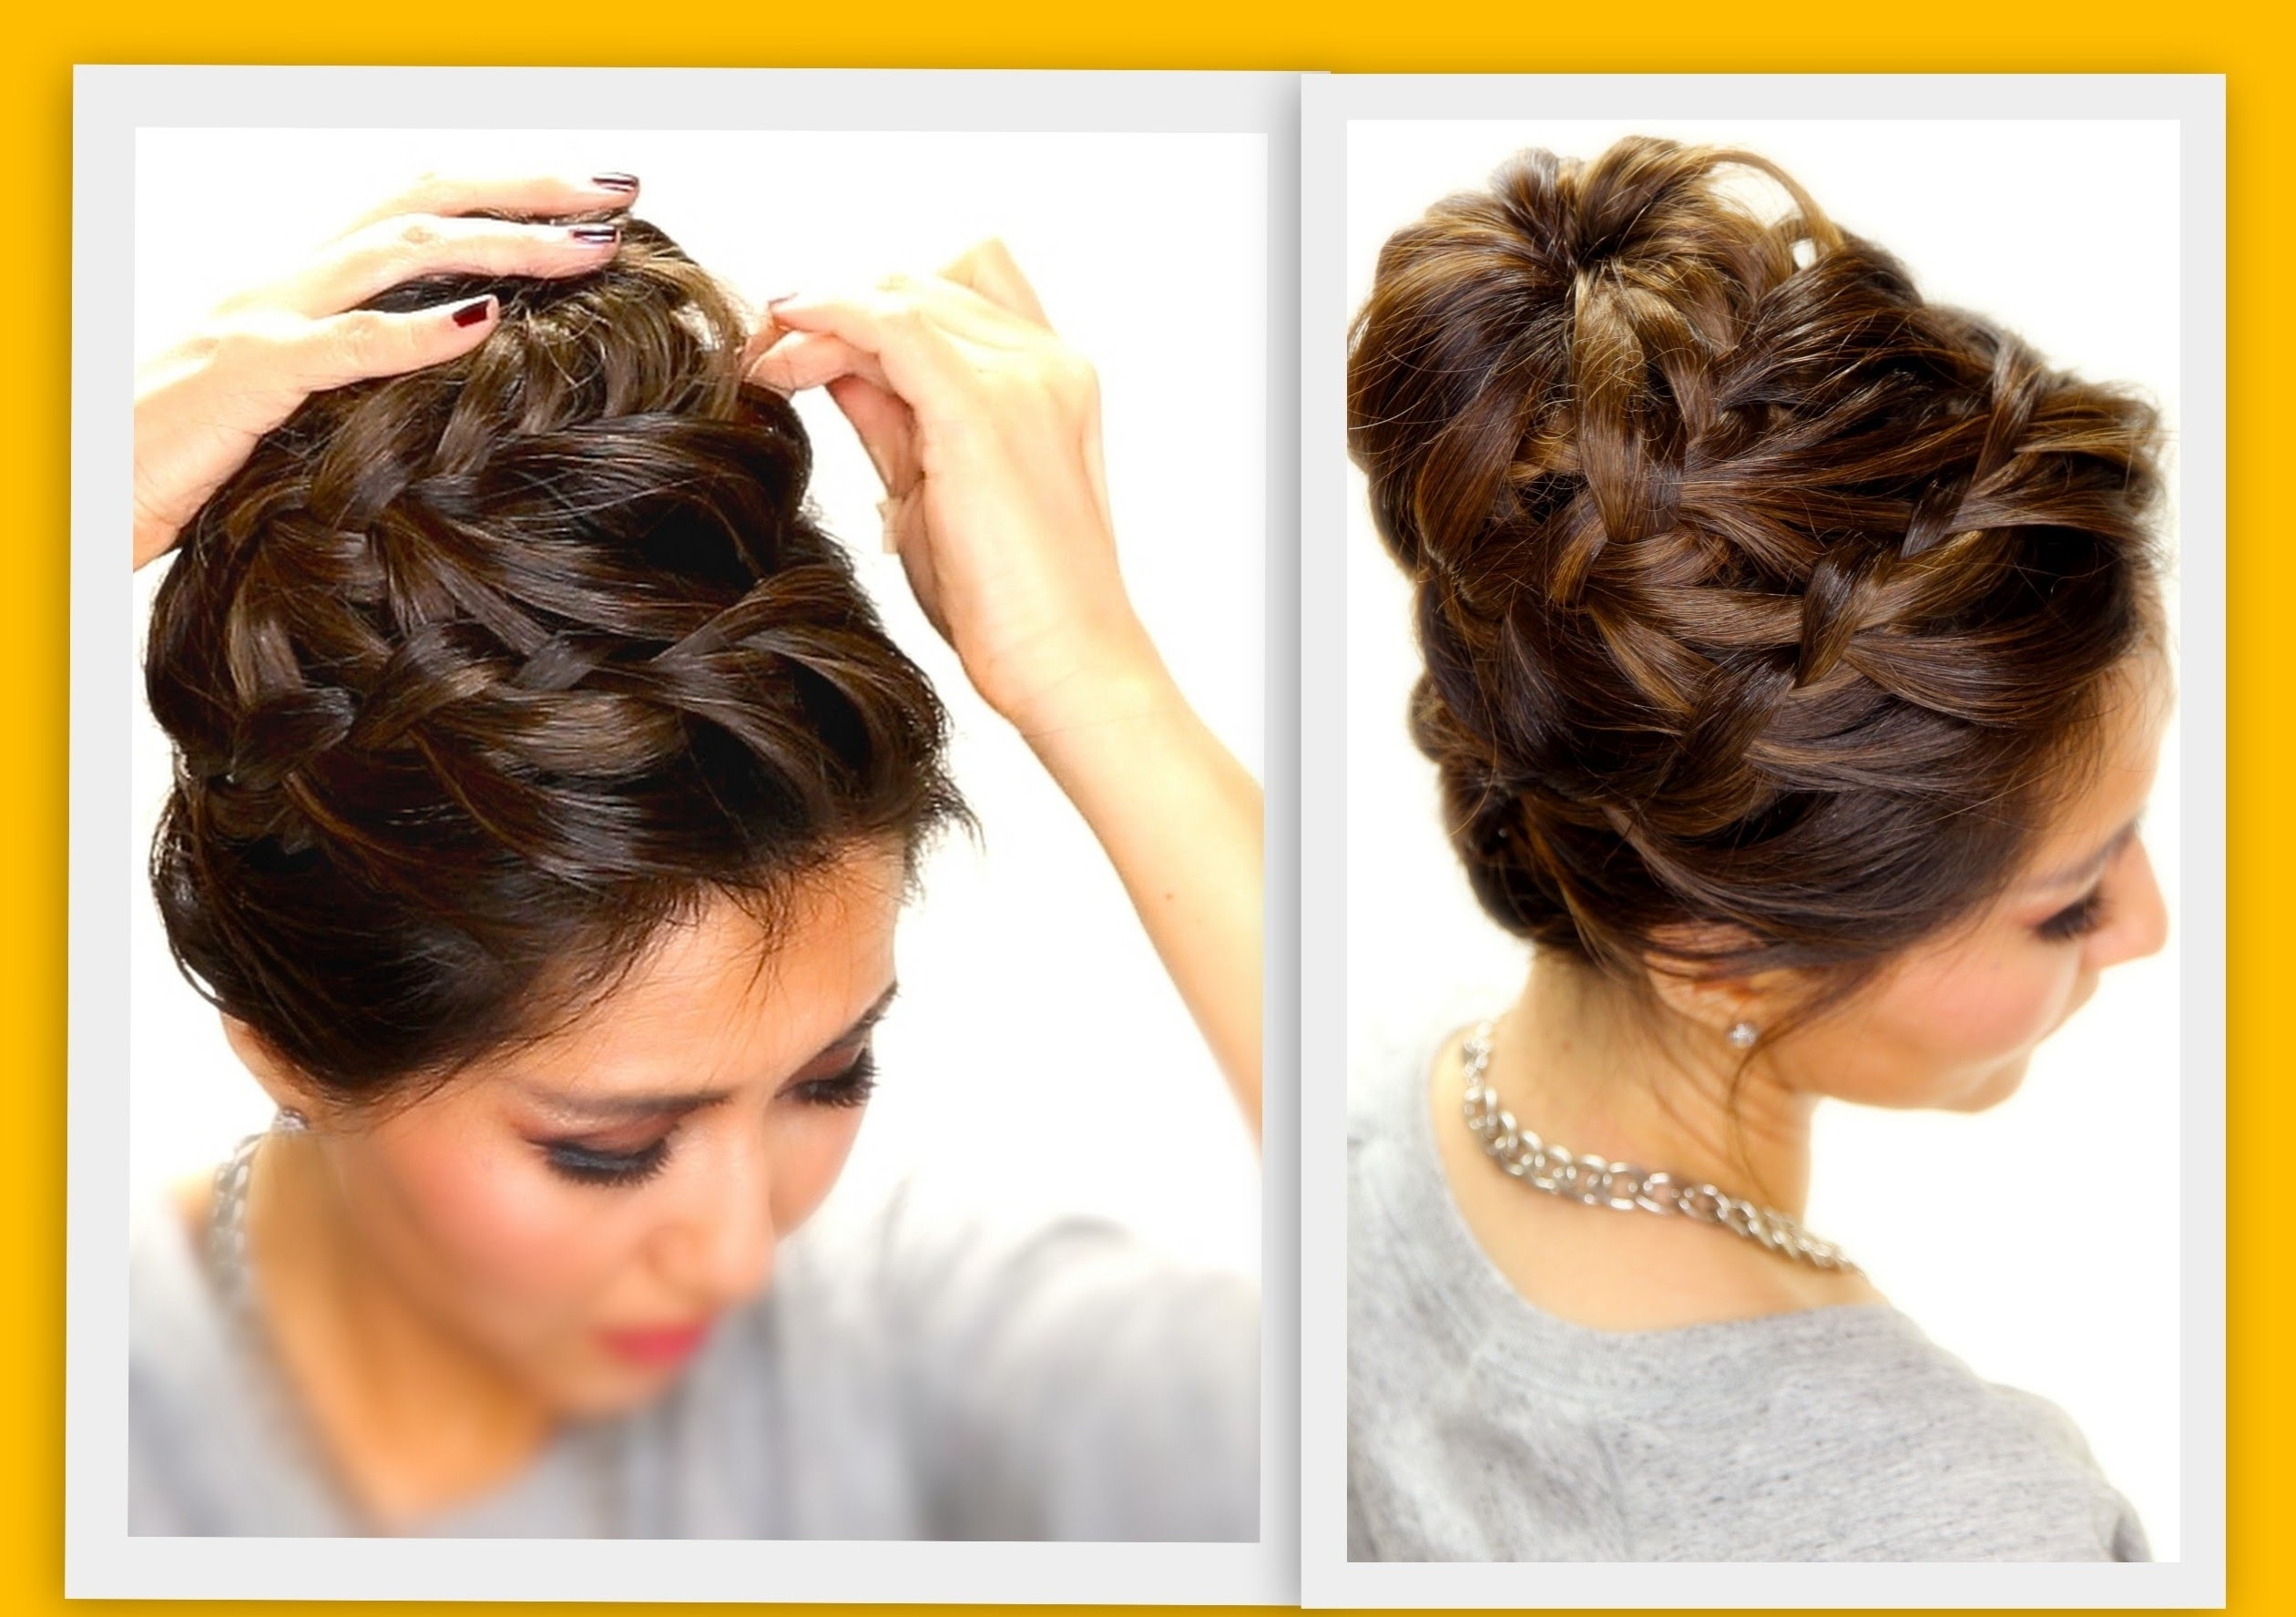 Latest Braided Updo Hairstyles For Weddings With ☆ Epic Braid Bun (View 4 of 15)